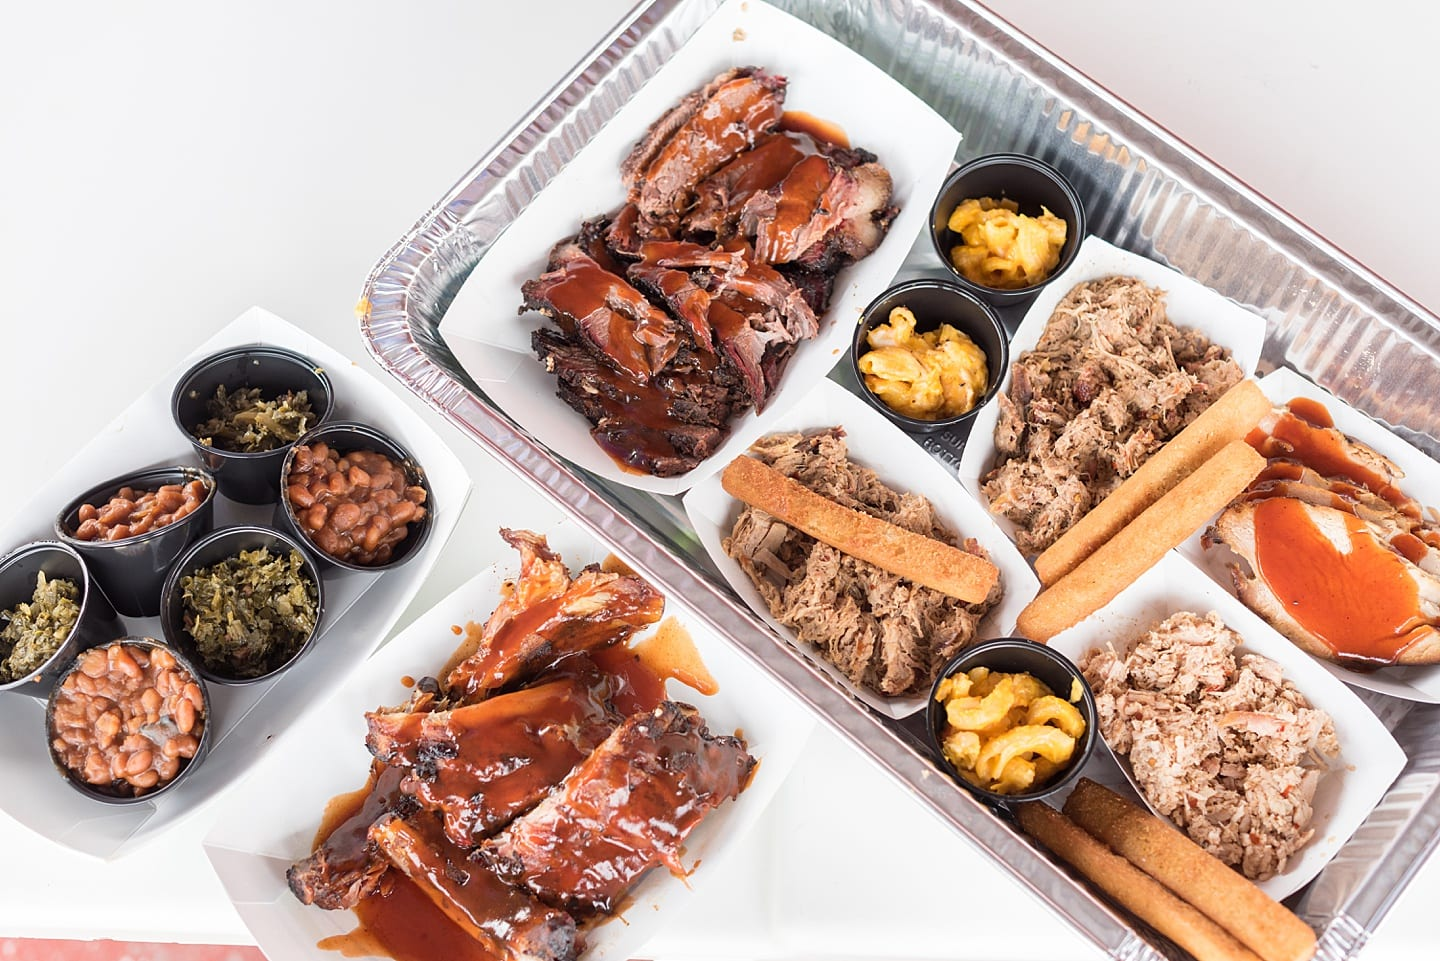 Goldsboro NC BBQ is a force to be reckoned with! The eastern vinegar based sauce of barbecue in this United States region can be sampled at a variety of restaurants, on pork, chicken, turkey or more. These restaurants have rubs to delight your taste too. Check out our article about the best places to try these southern delicacy recipes on delicious meats. #NCBBQ #barbecue #BBQ #northcarolina #GoldsboroNC #sometimeshome #vinegarBBQ